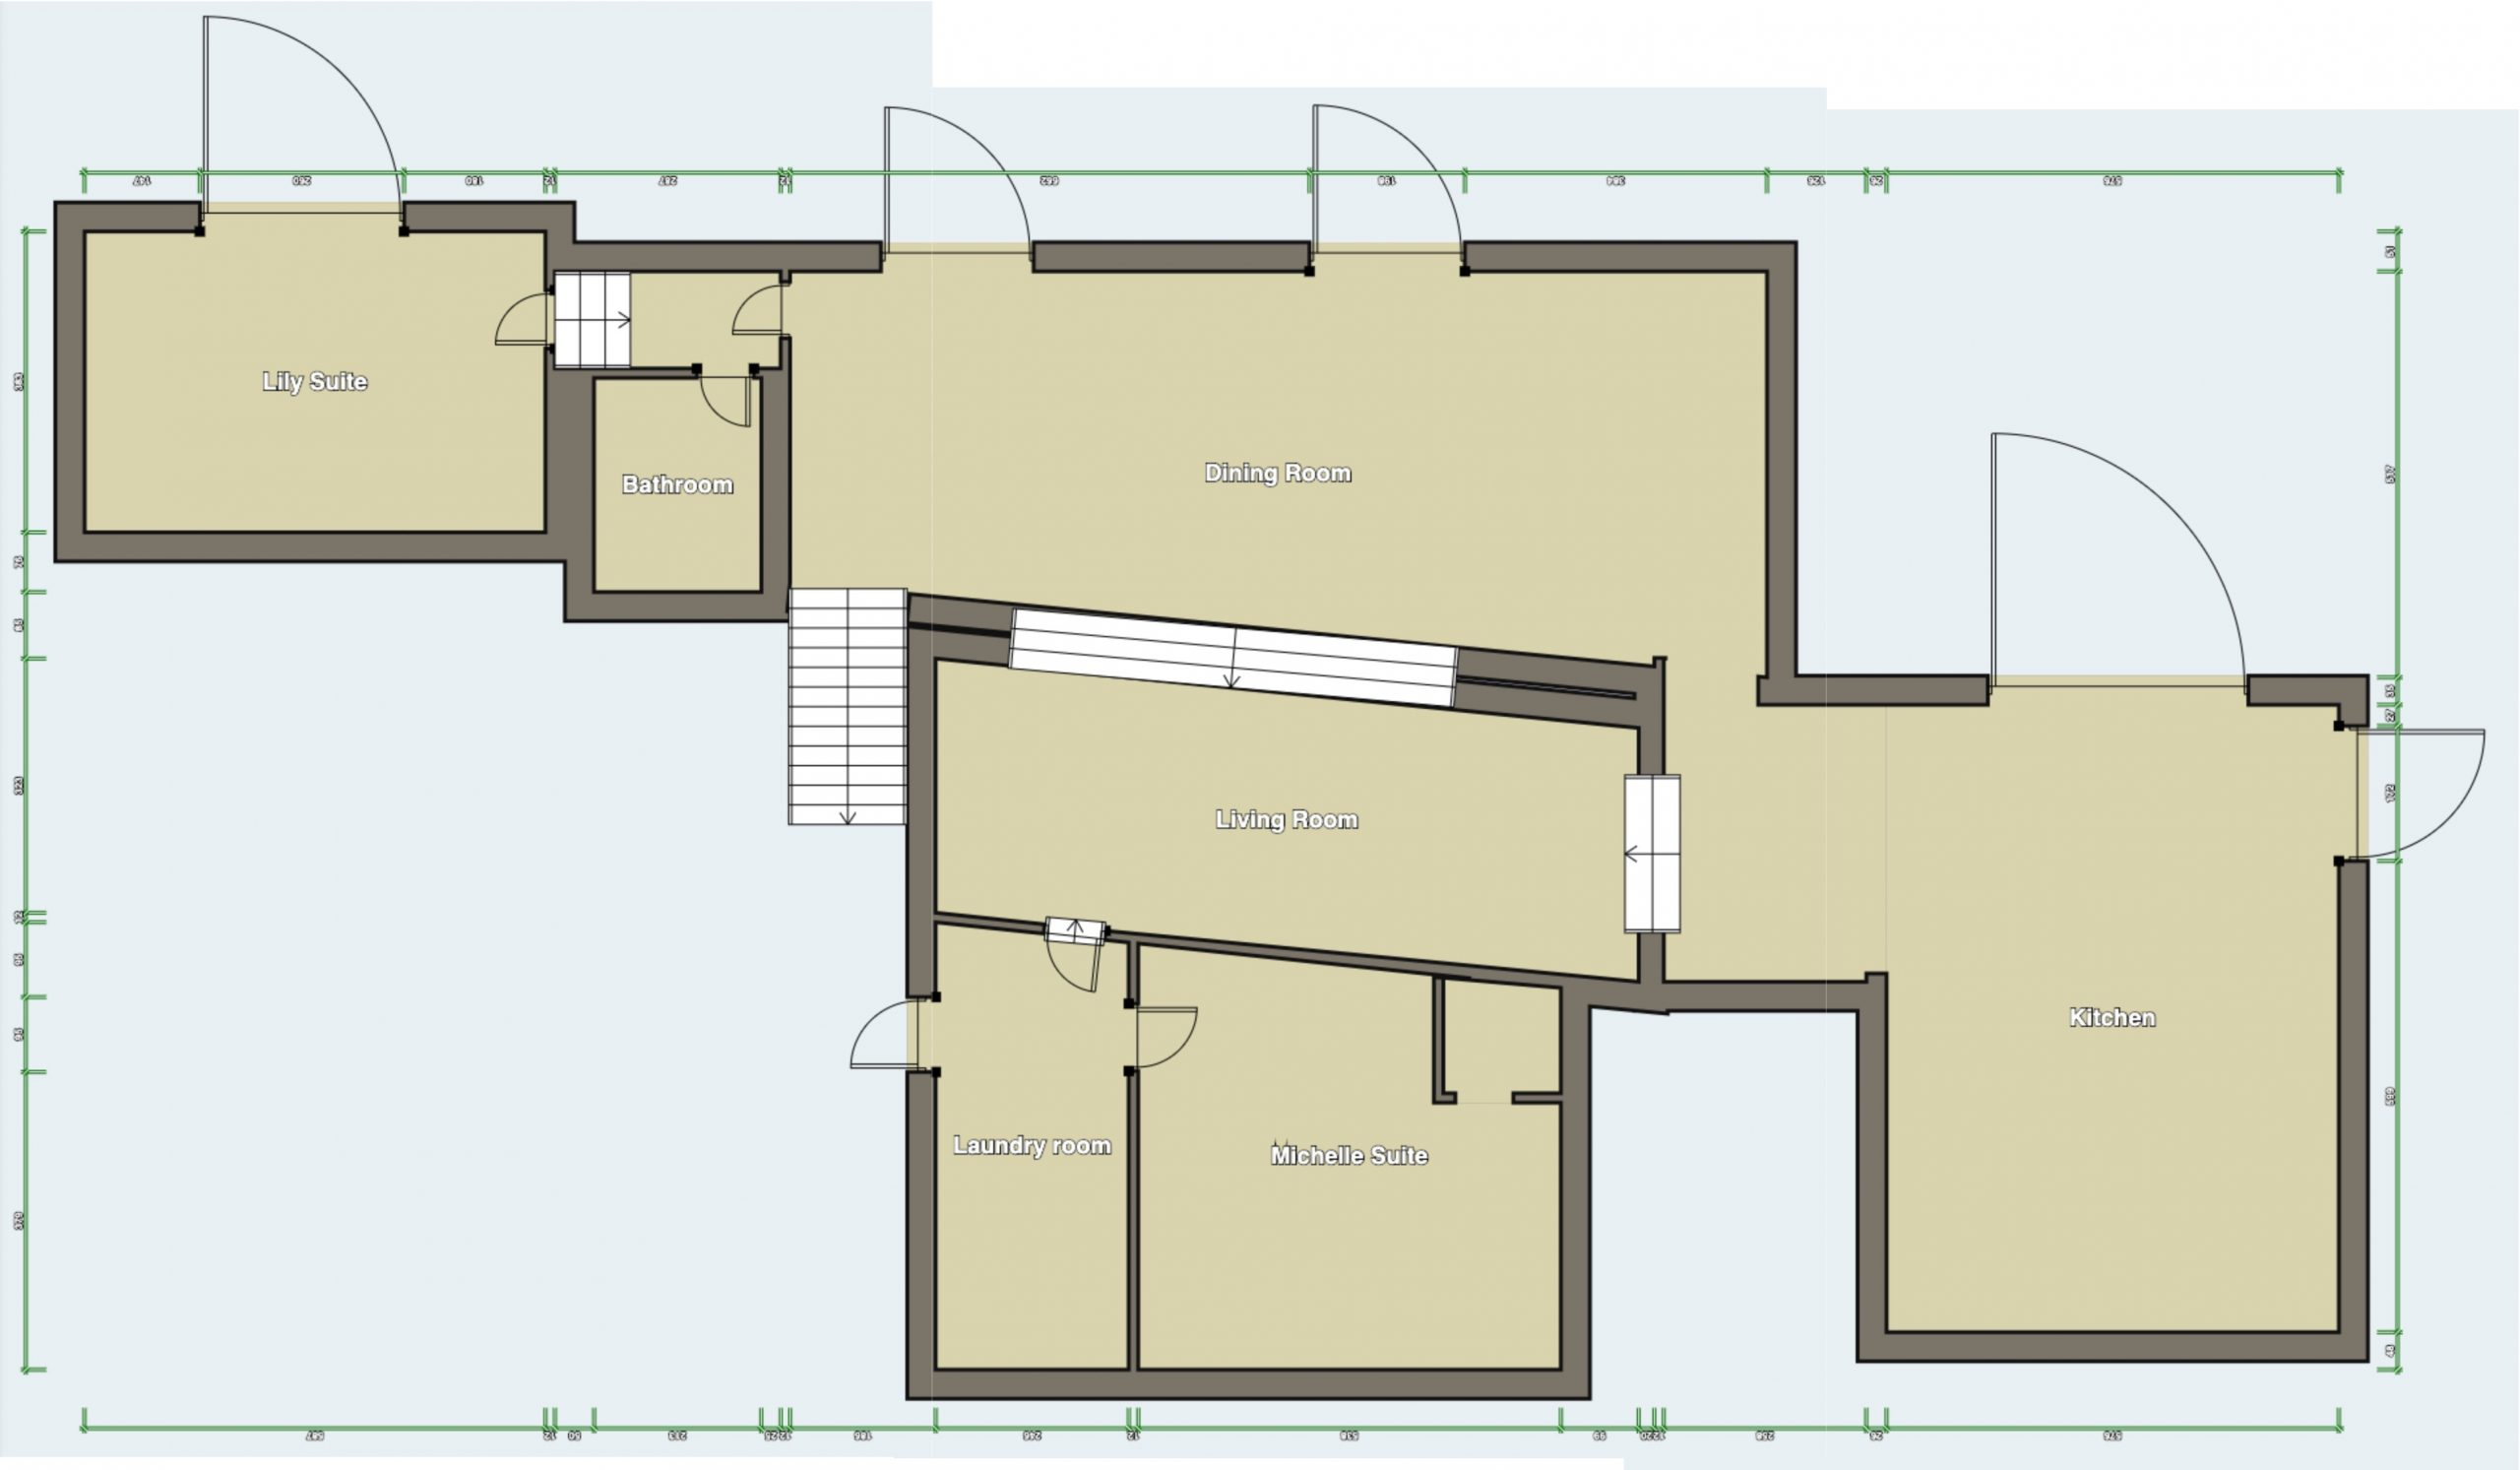 Floor Plan - Ground Floor of main villa